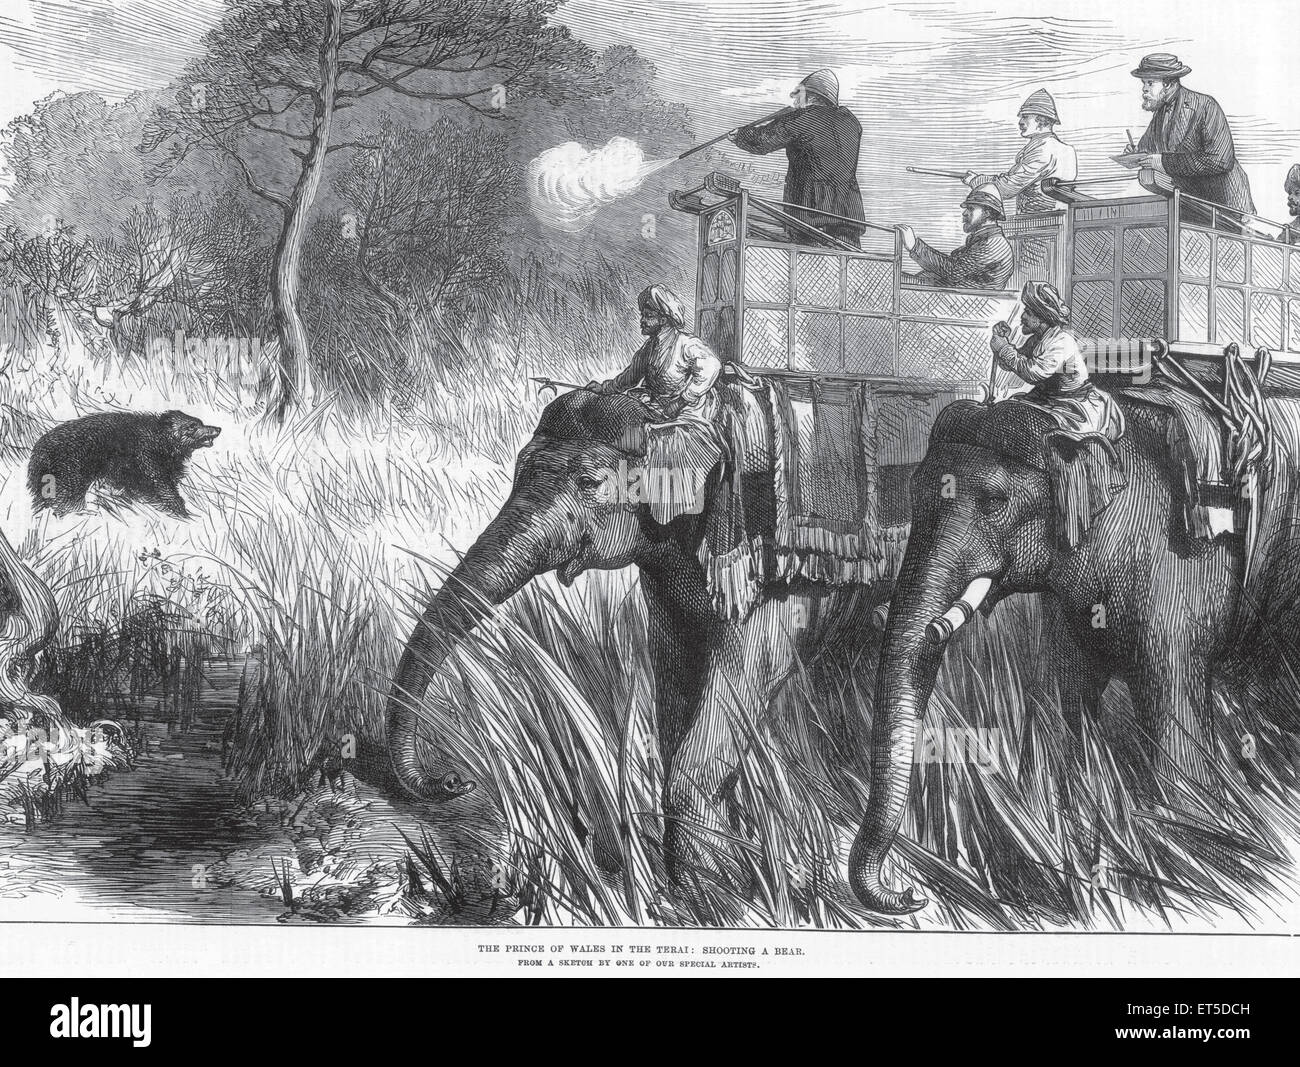 Royalty on Tour The Prince of Wales in the Terai Shooting a Bear ; India - Stock Image